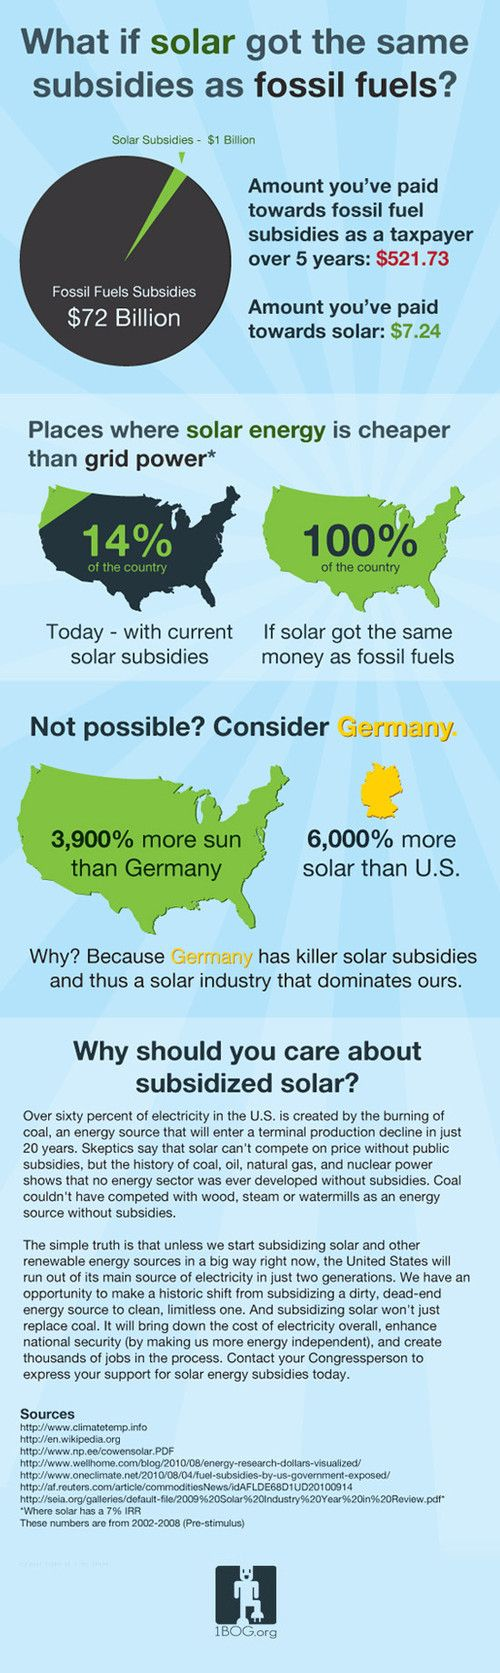 What if solar got fossil fuel subsidies